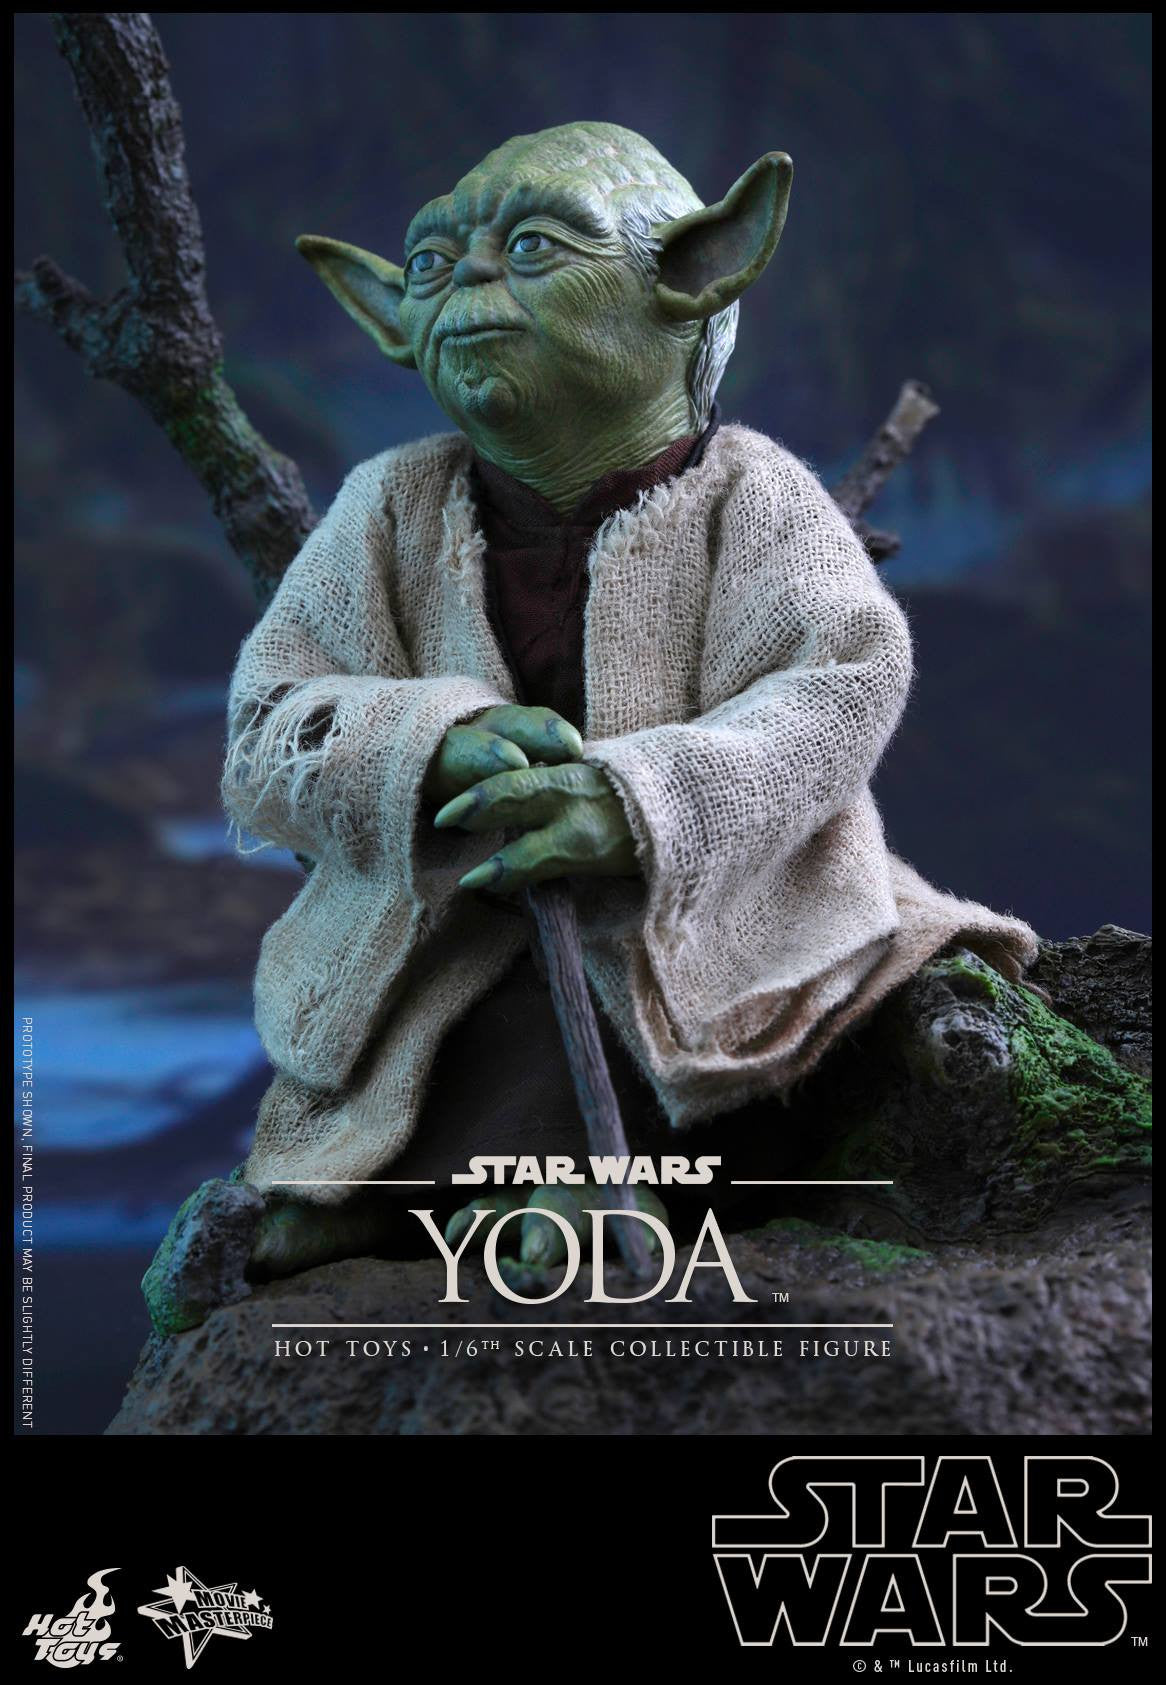 Hot Toys - MMS369 - Star Wars: The Empire Strikes Back - Yoda - Marvelous Toys - 11